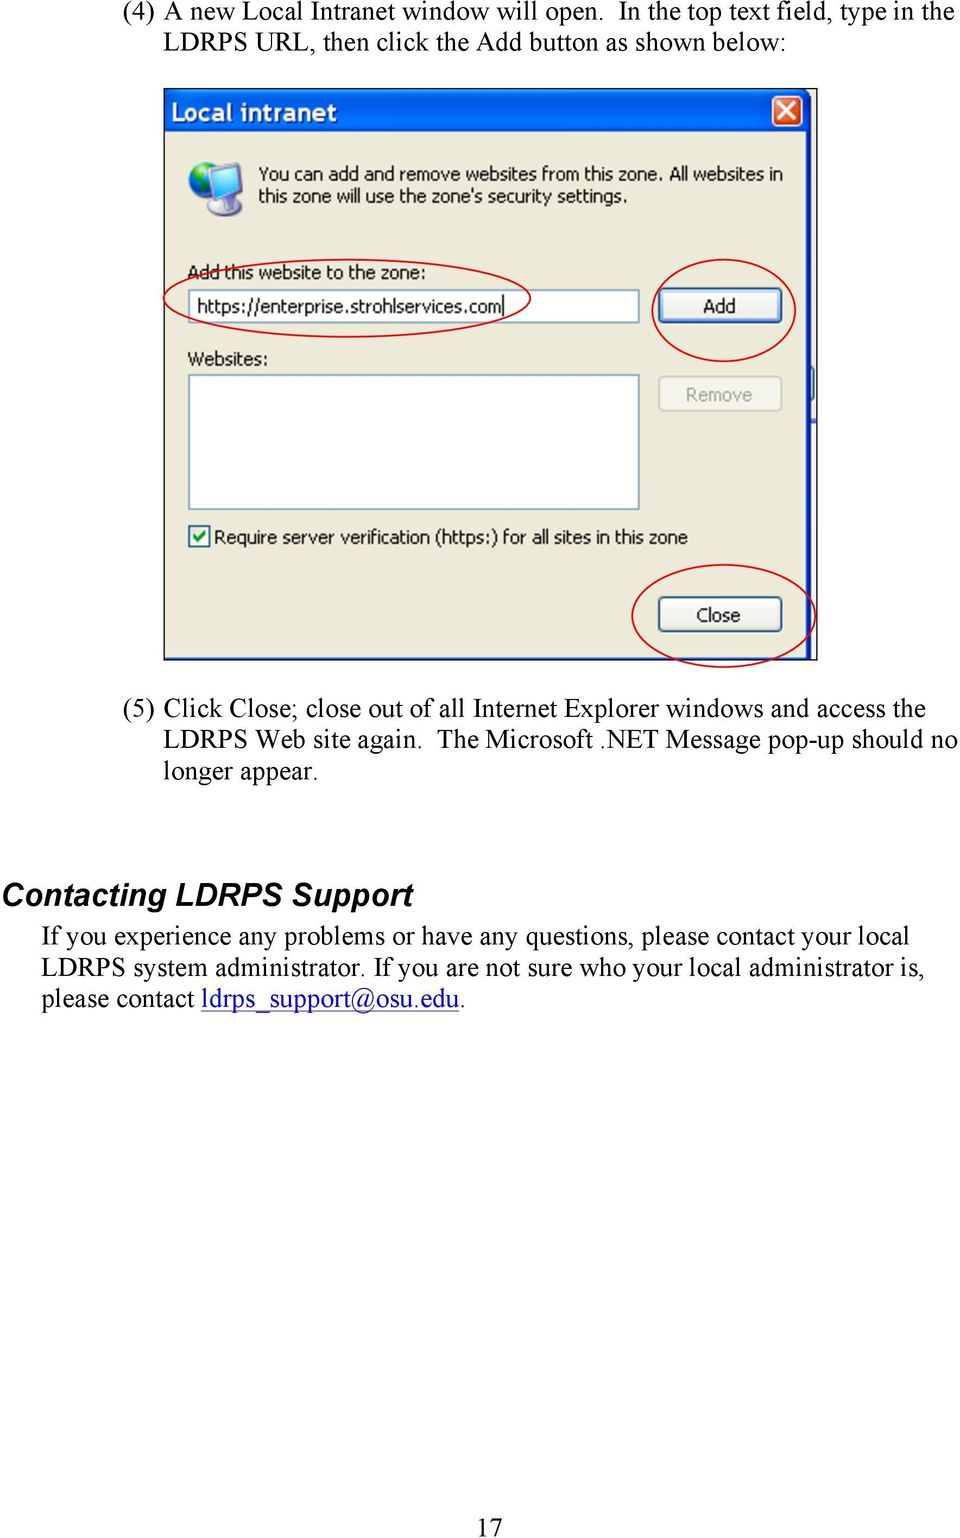 Internet Explorer windows and access the LDRPS Web site again. The Microsoft.NET Message pop-up should no longer appear.